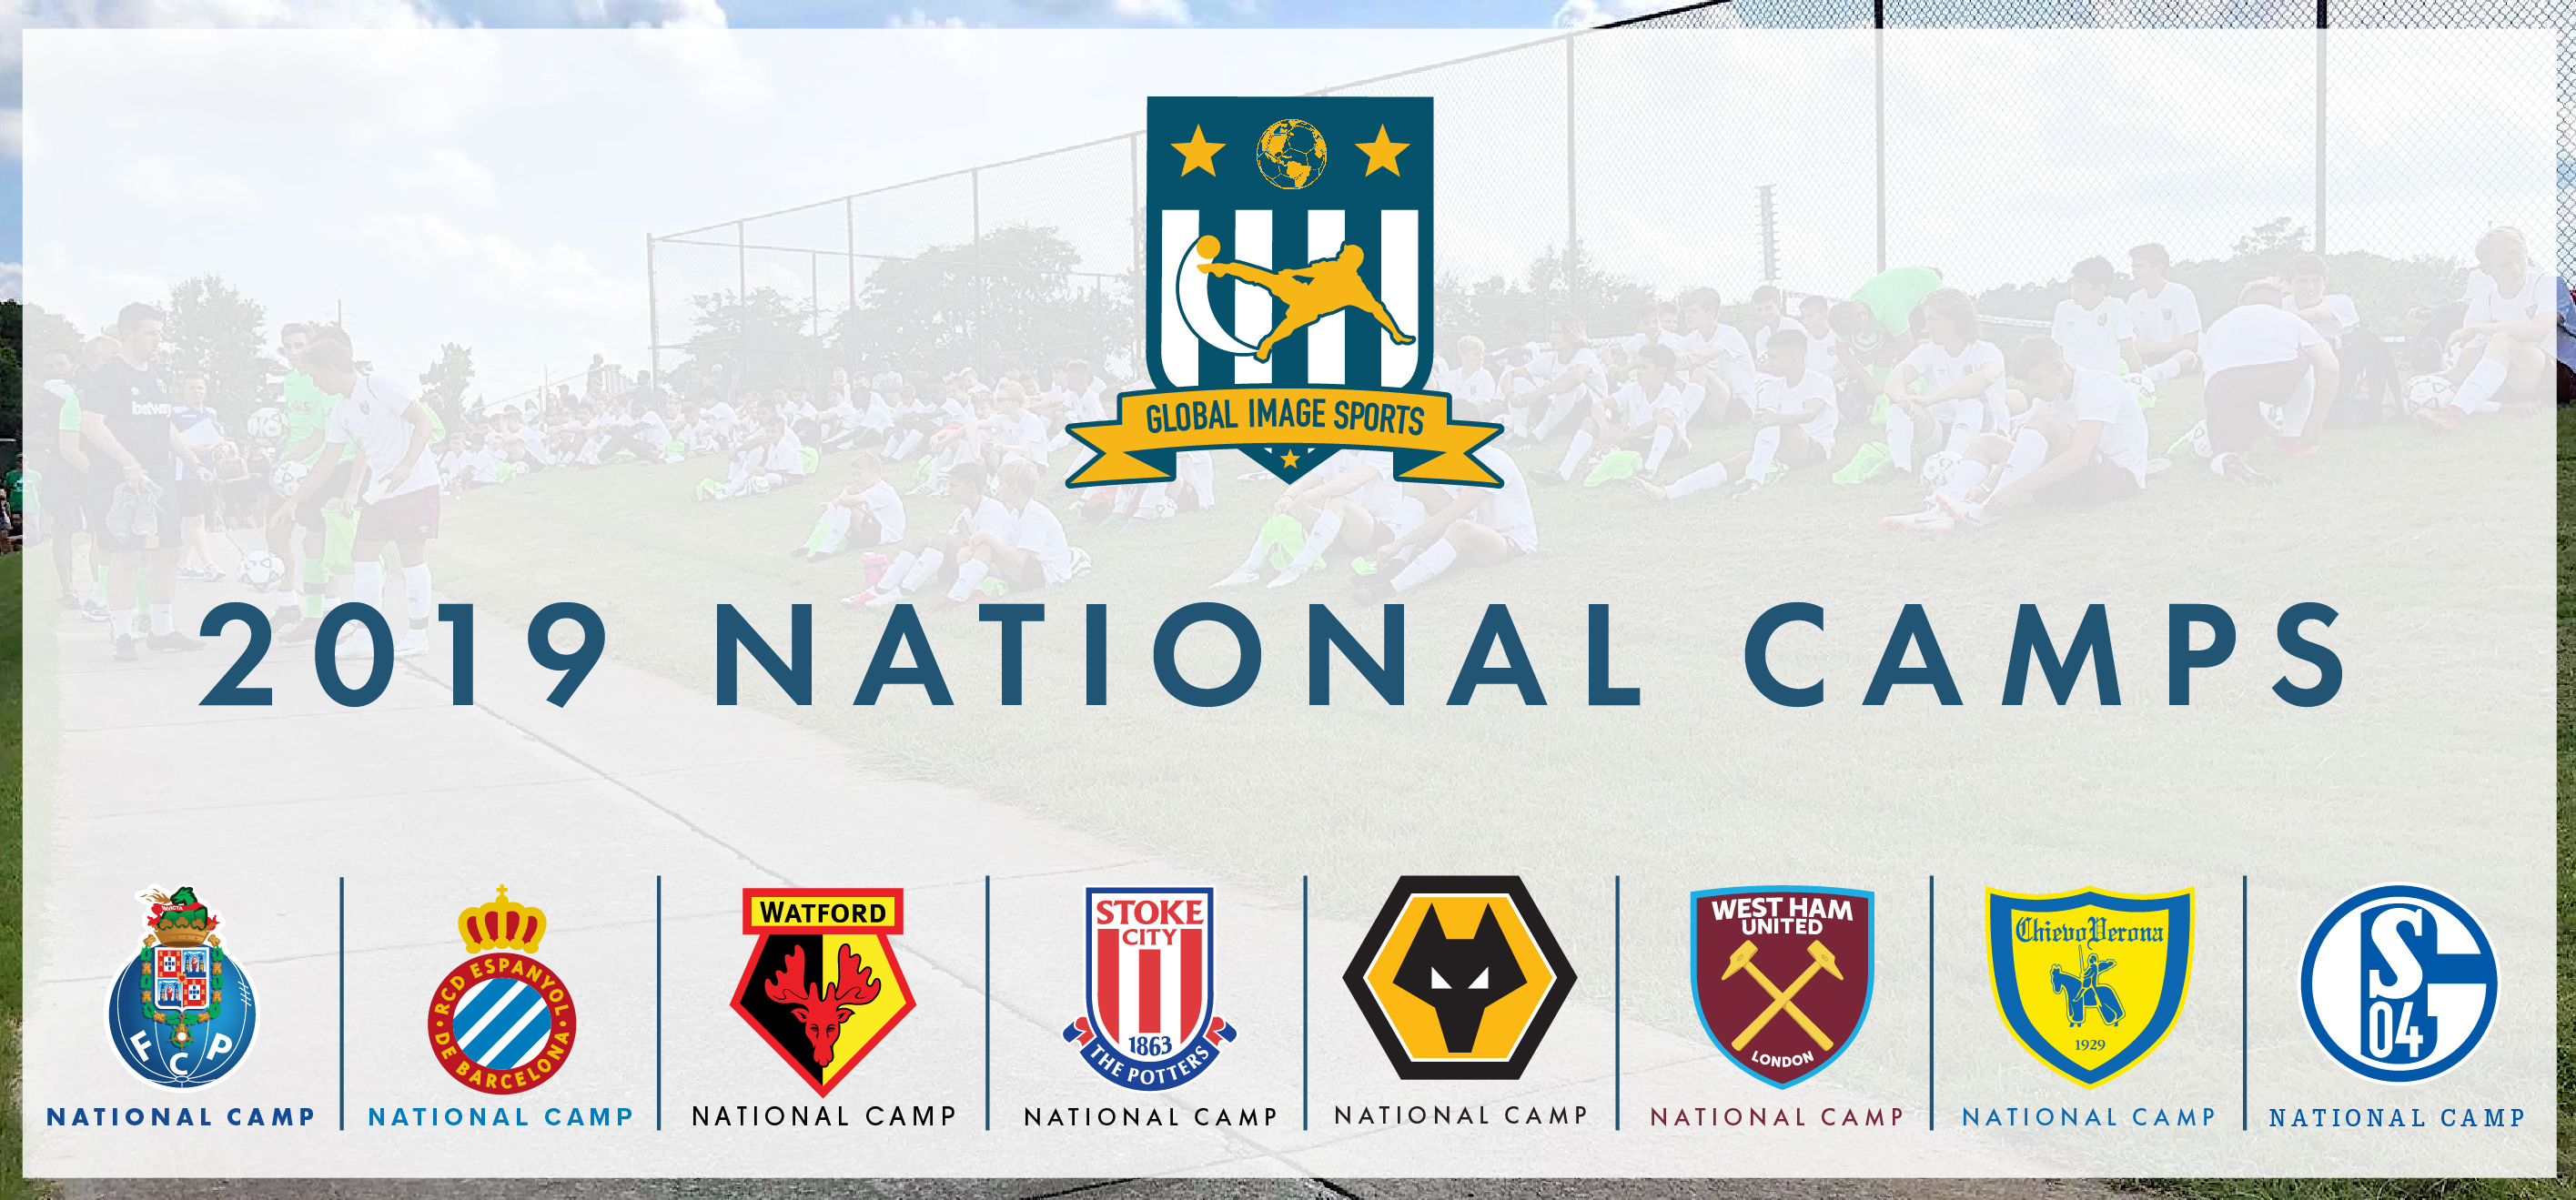 2019 National Camps Announced! *New Dates Added*